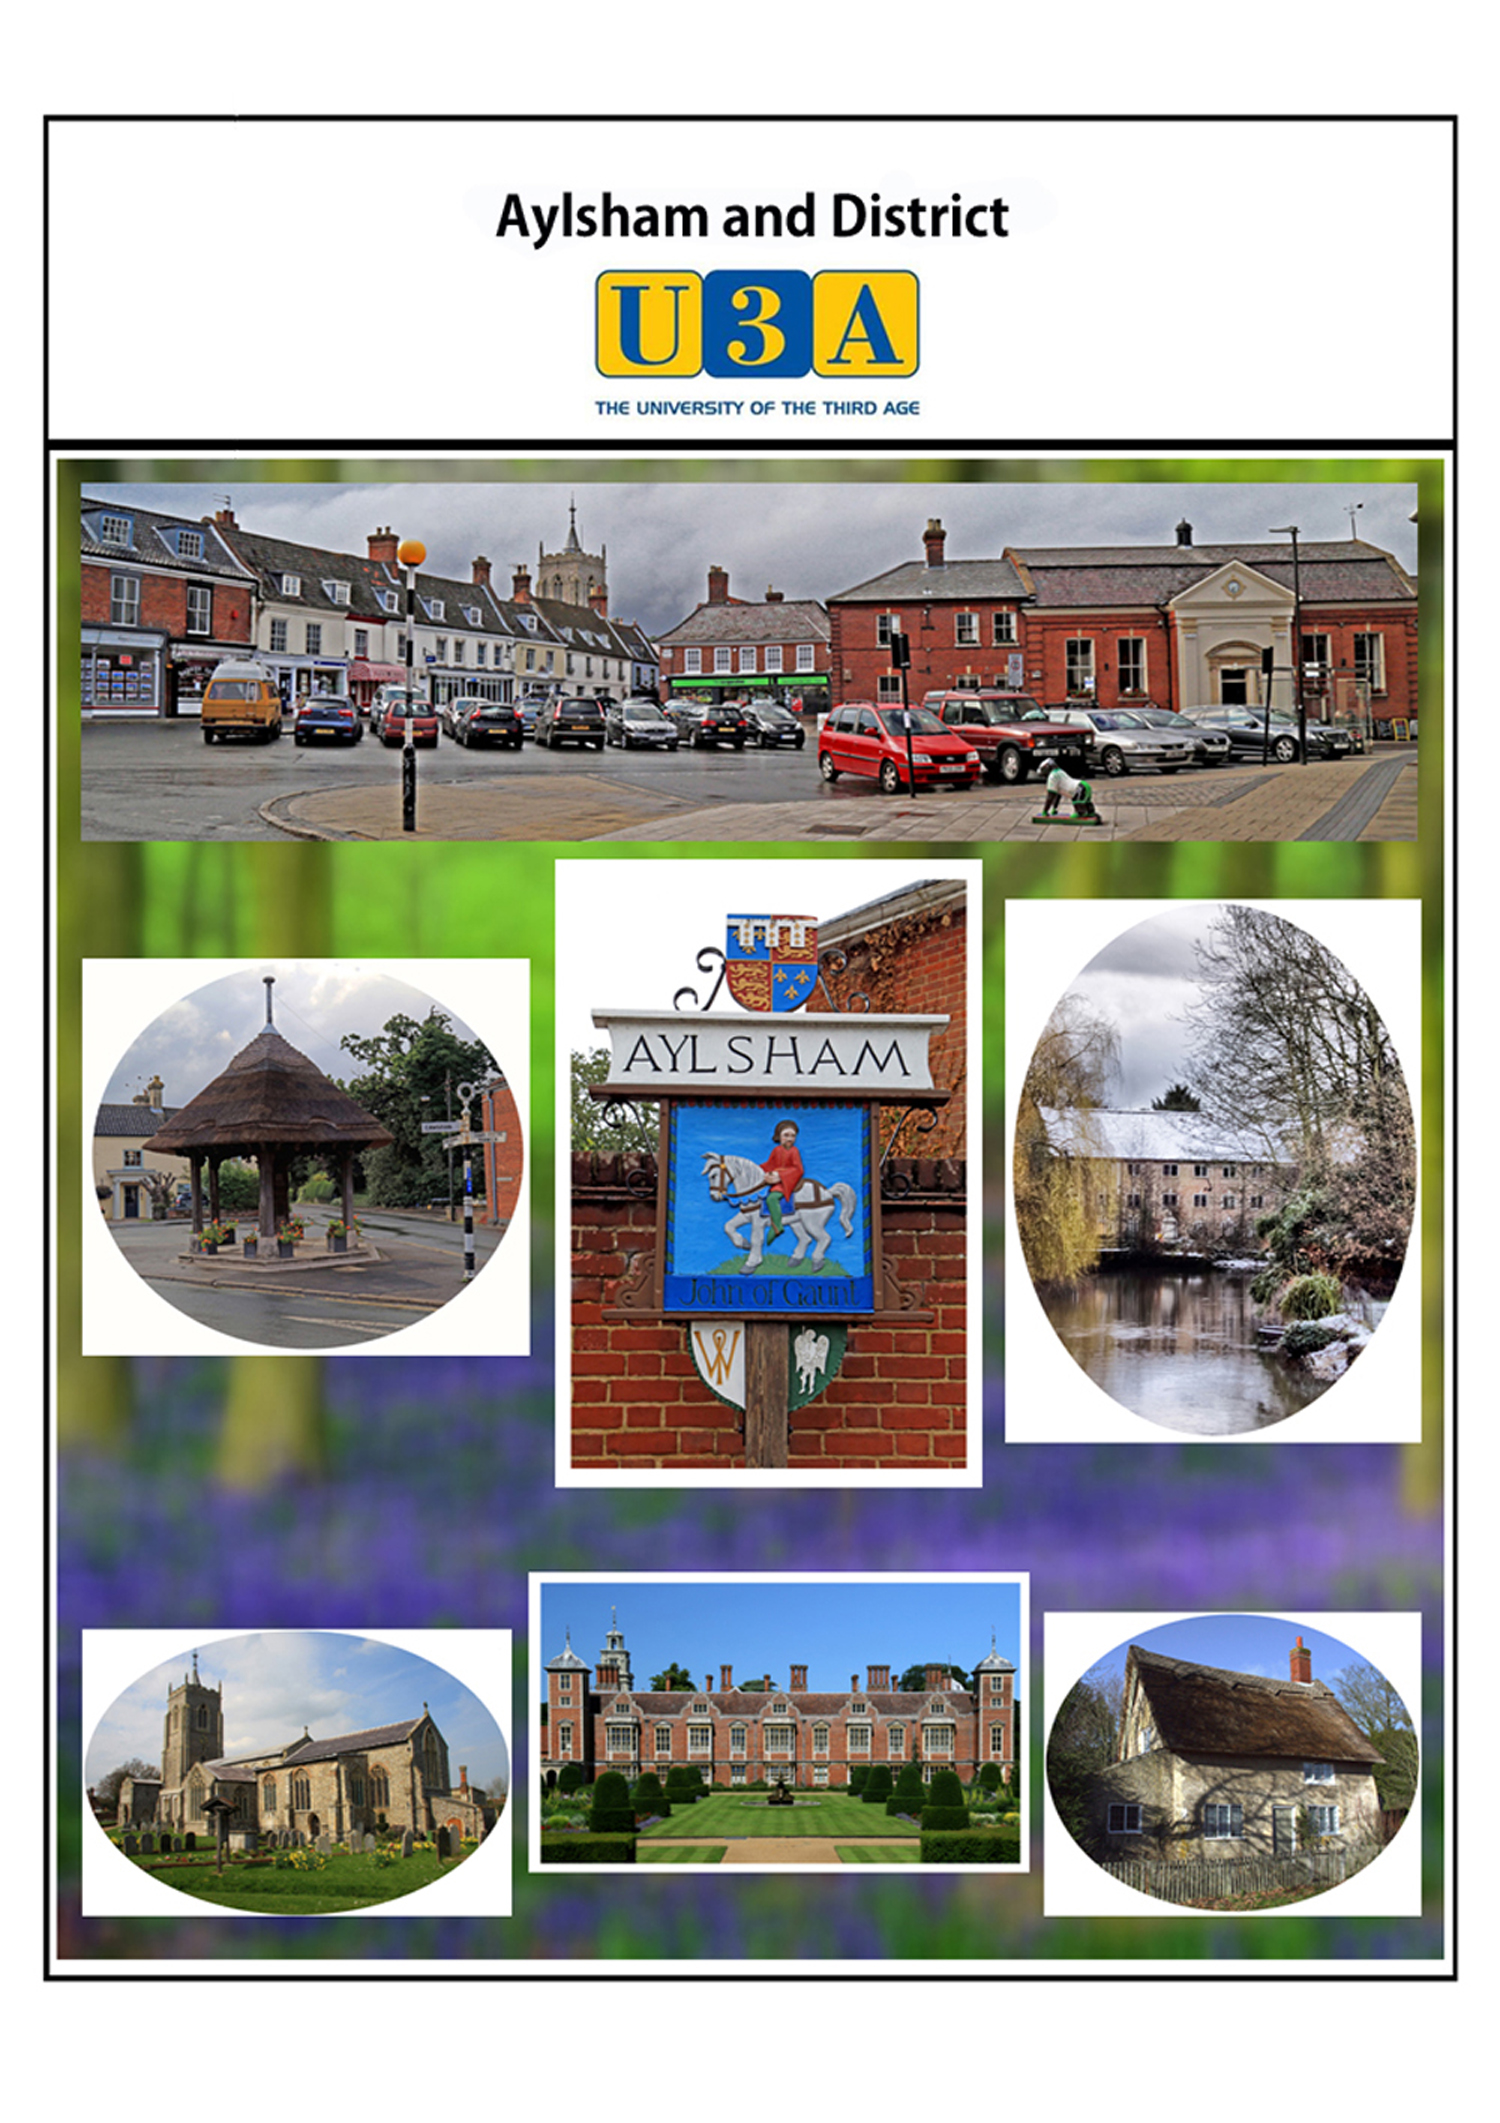 Aylsham is a thriving market town